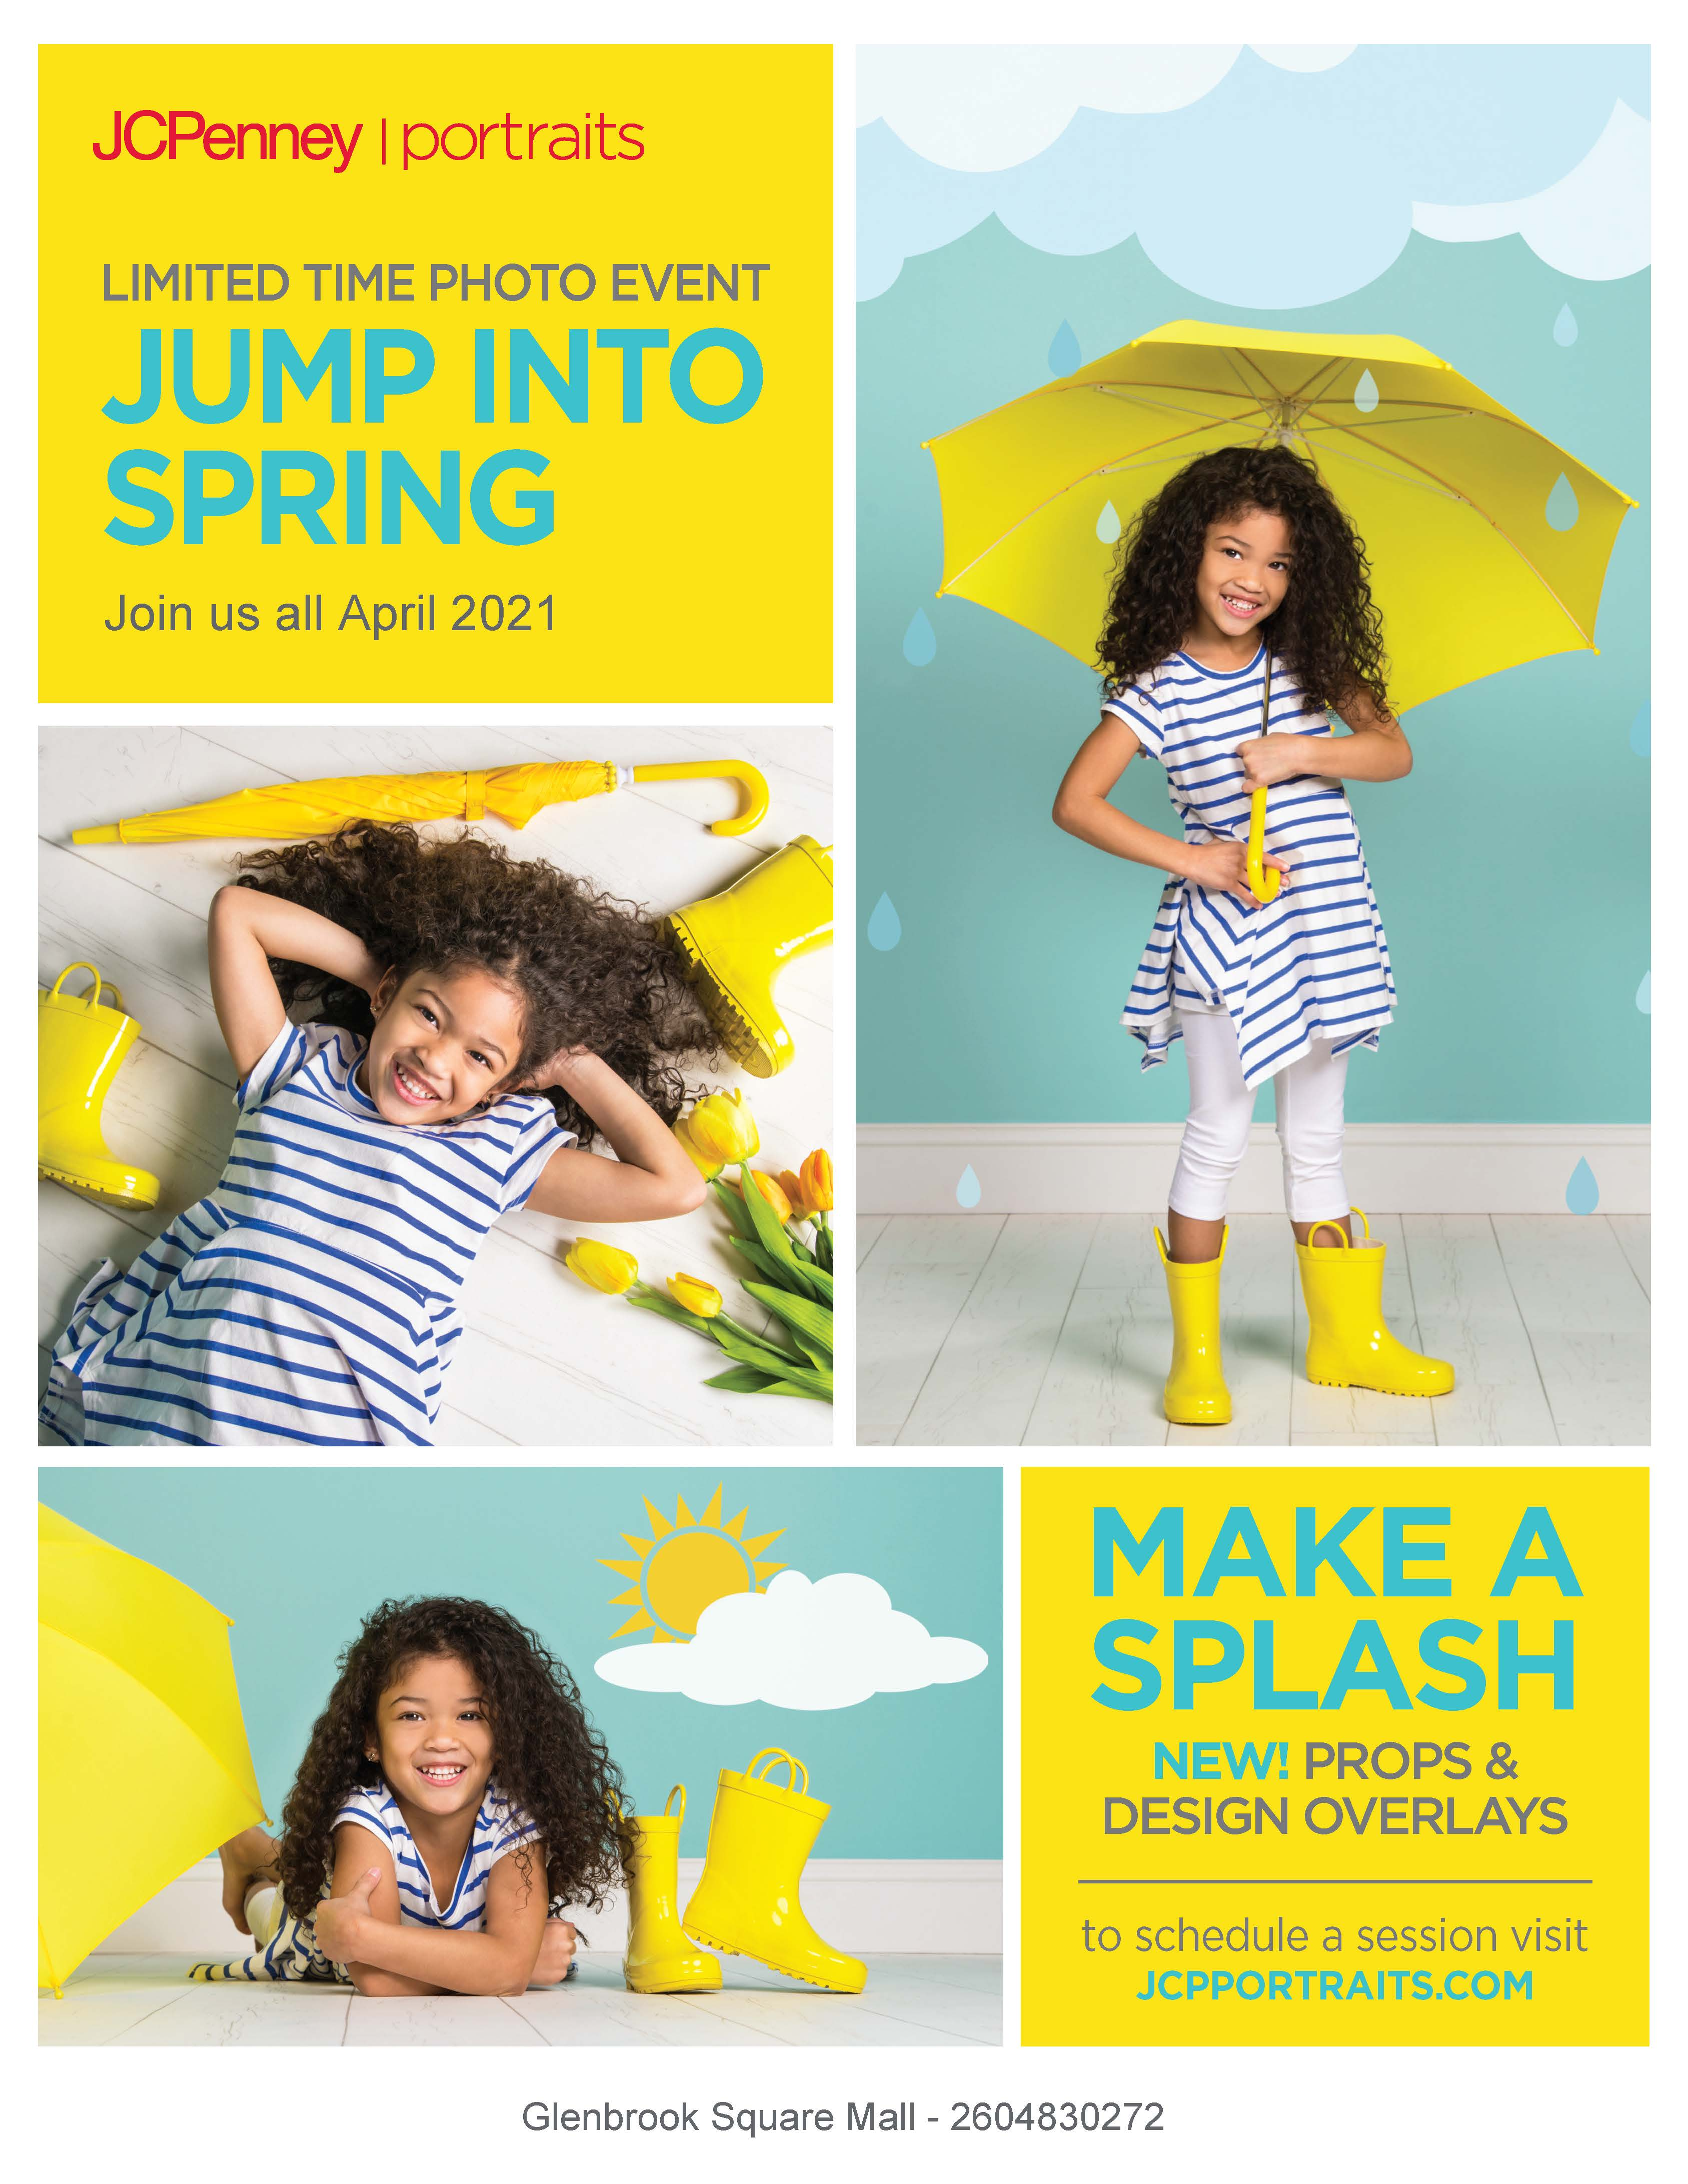 Jump into Spring Event from JCPenney